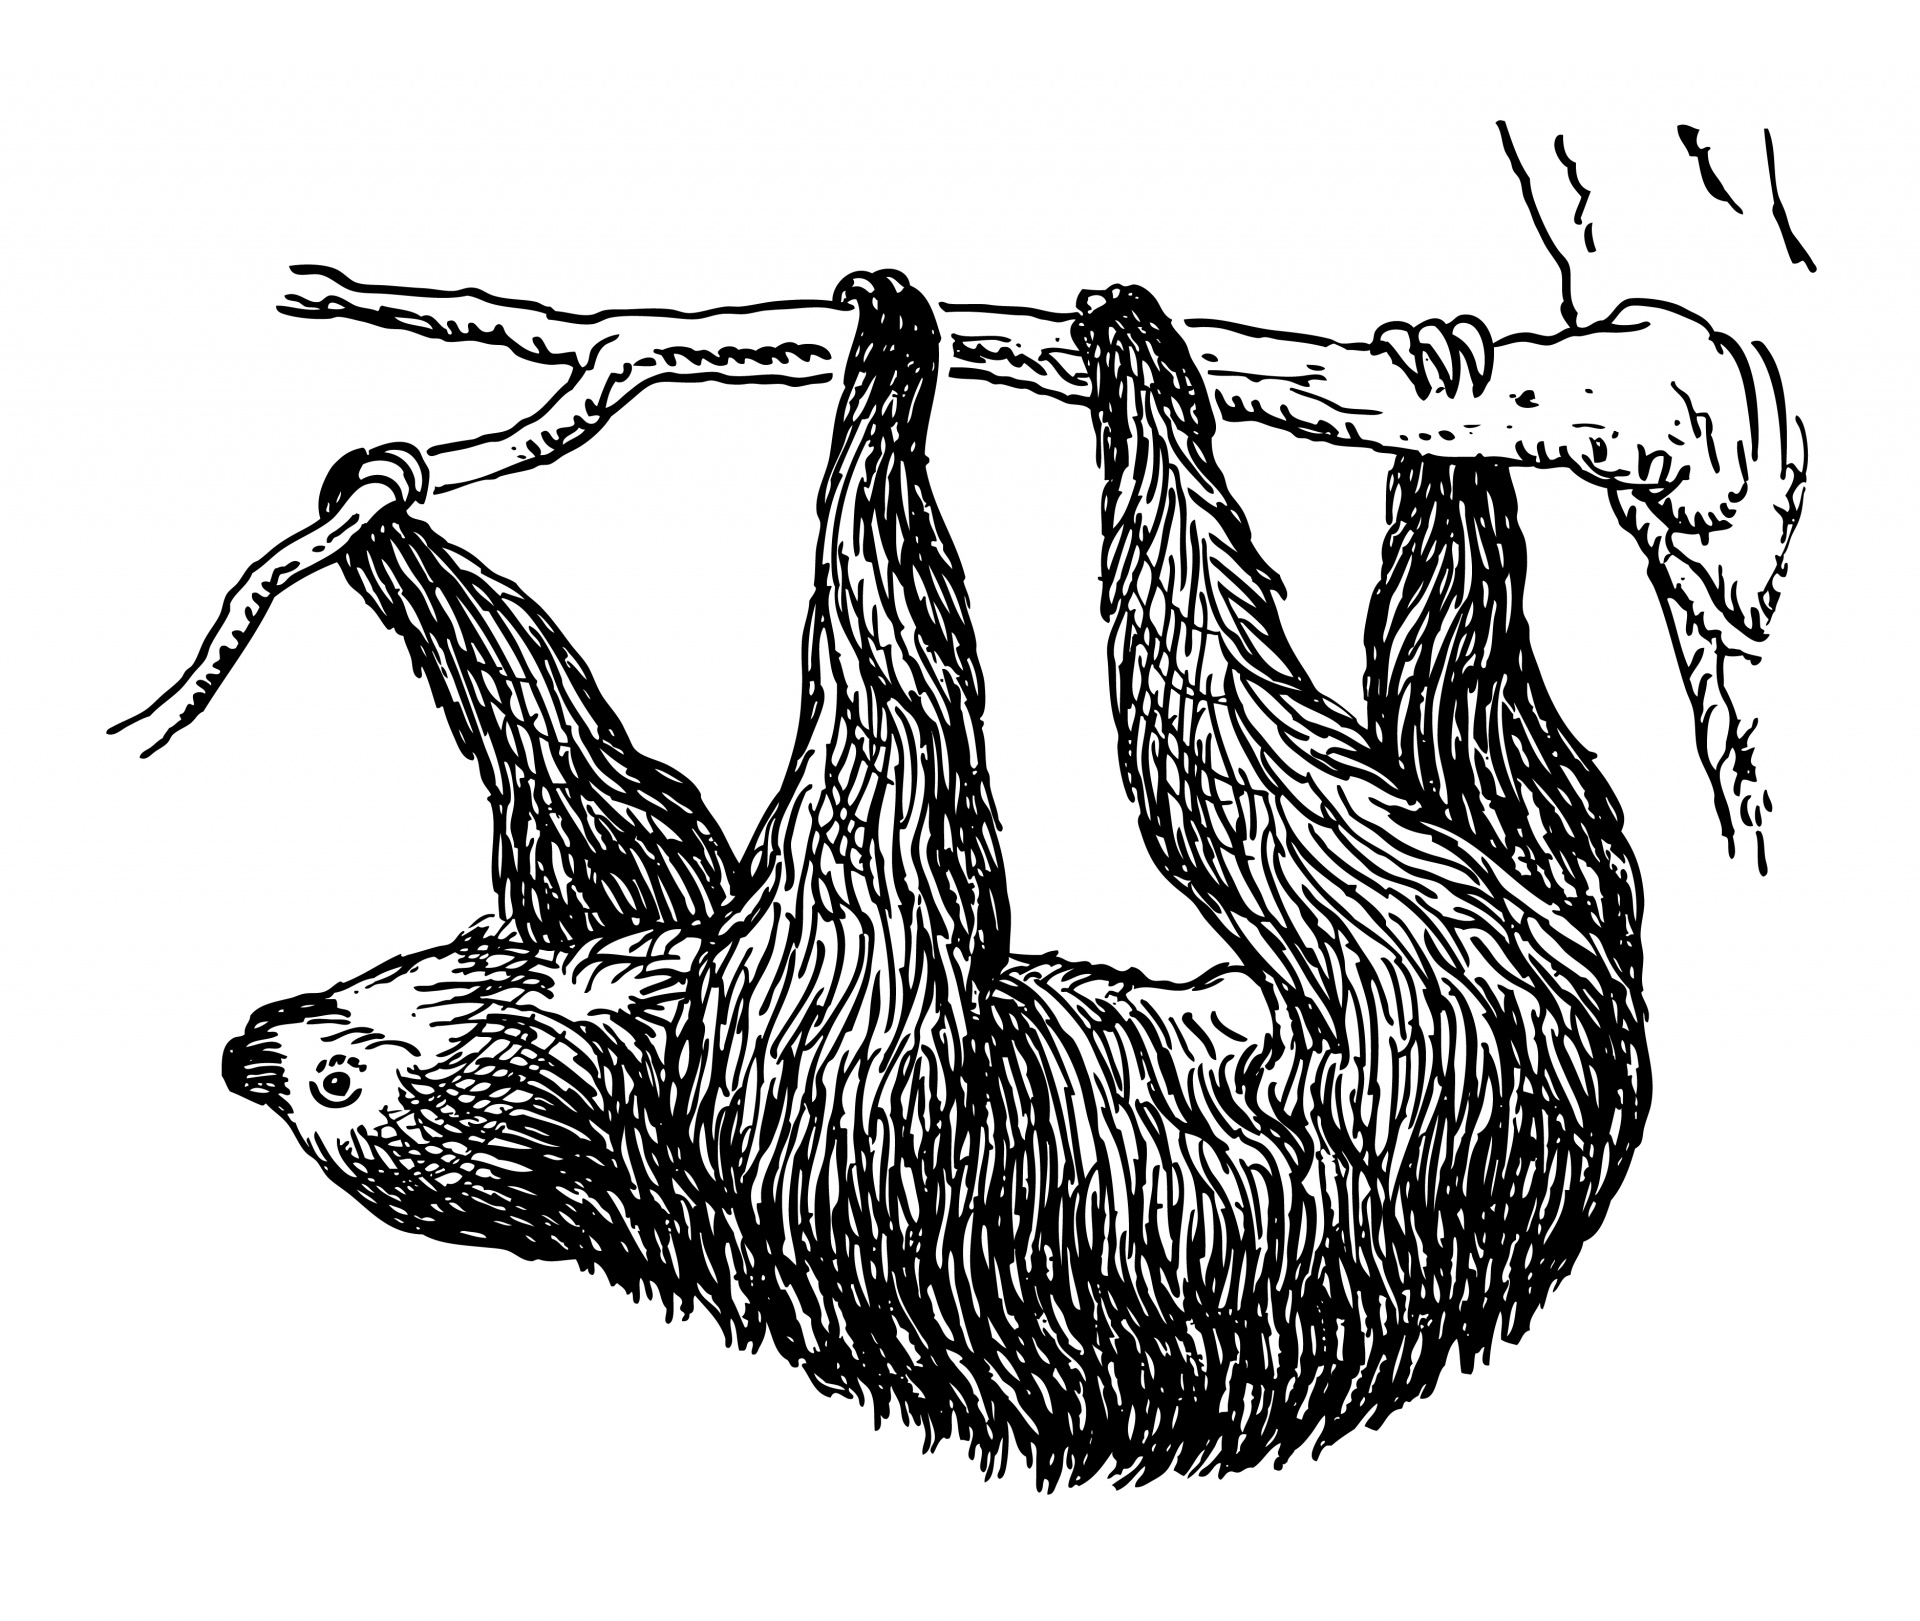 Sloth clipart #1, Download drawings